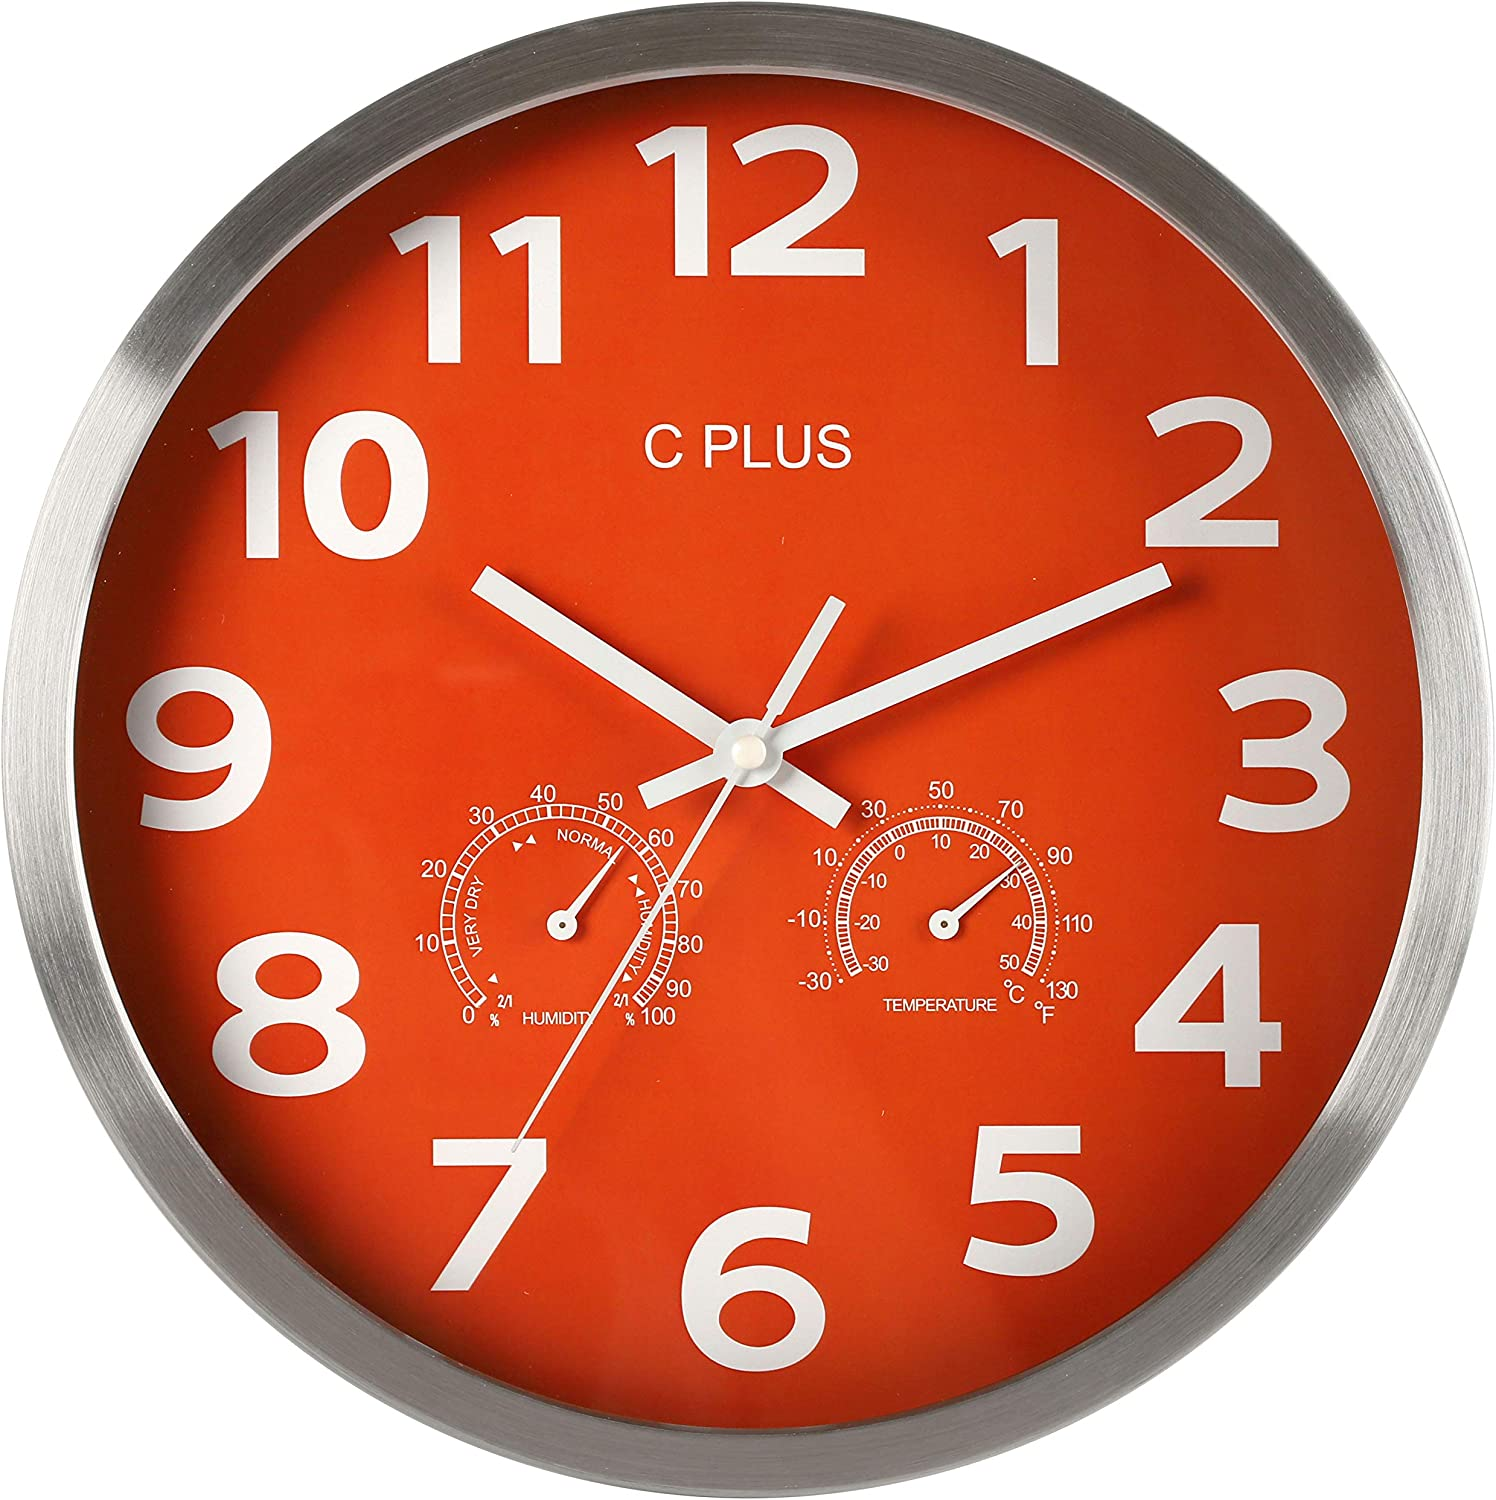 C PLUS Wall Clock Non-Ticking Silent Battery Operated 12 Inch Quiet Sweep Quartz Movement, Modern Home Decorations with Temperature and Humidity Large Numbers Easy to Read Round Indoor Light, Orange